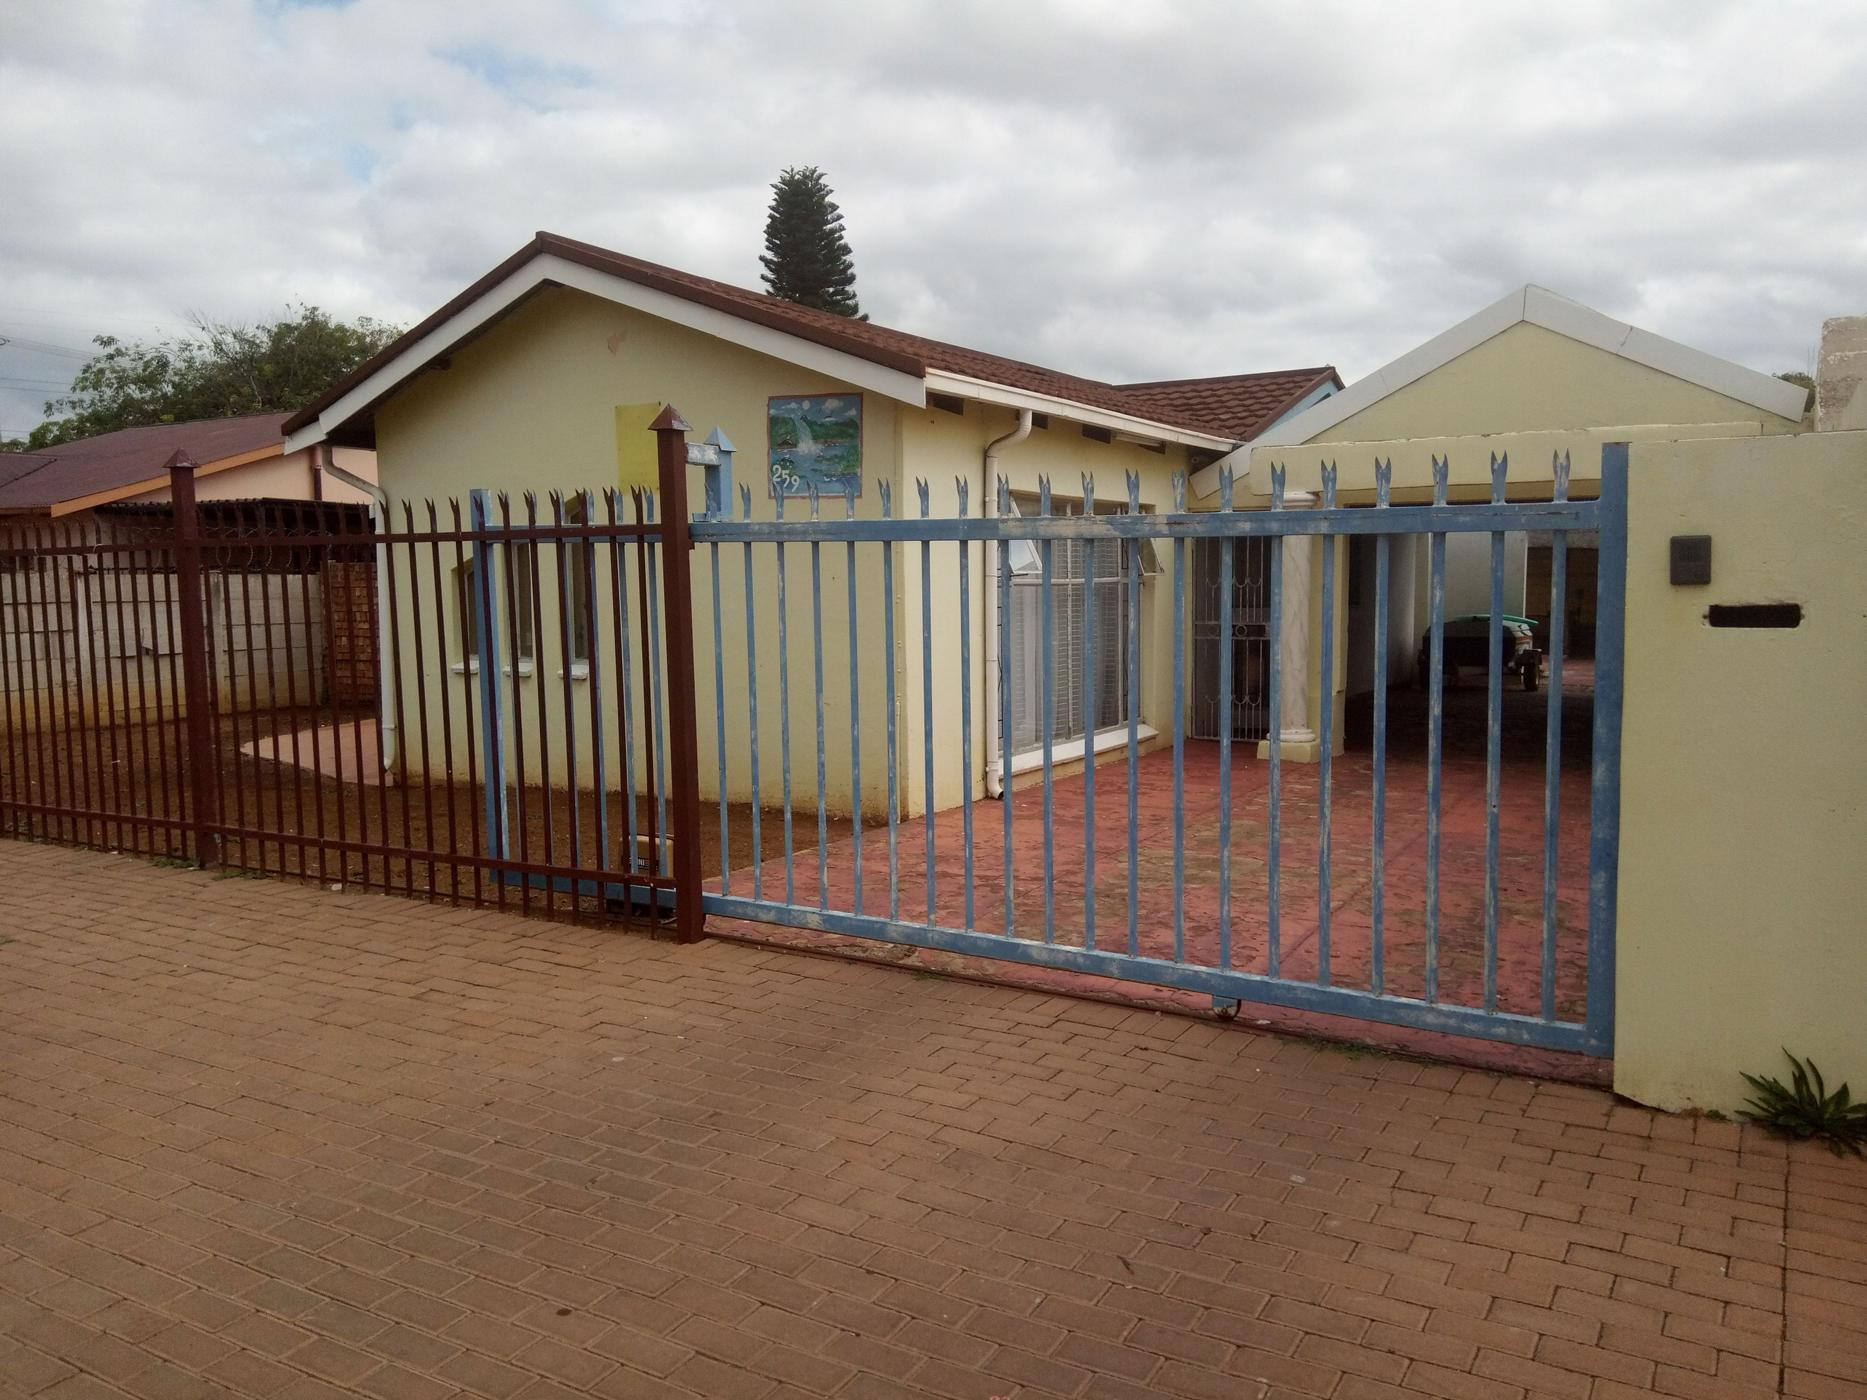 https://listing.pamgolding.co.za/images/properties/201904/1295715/H/1295715_H_11.jpg